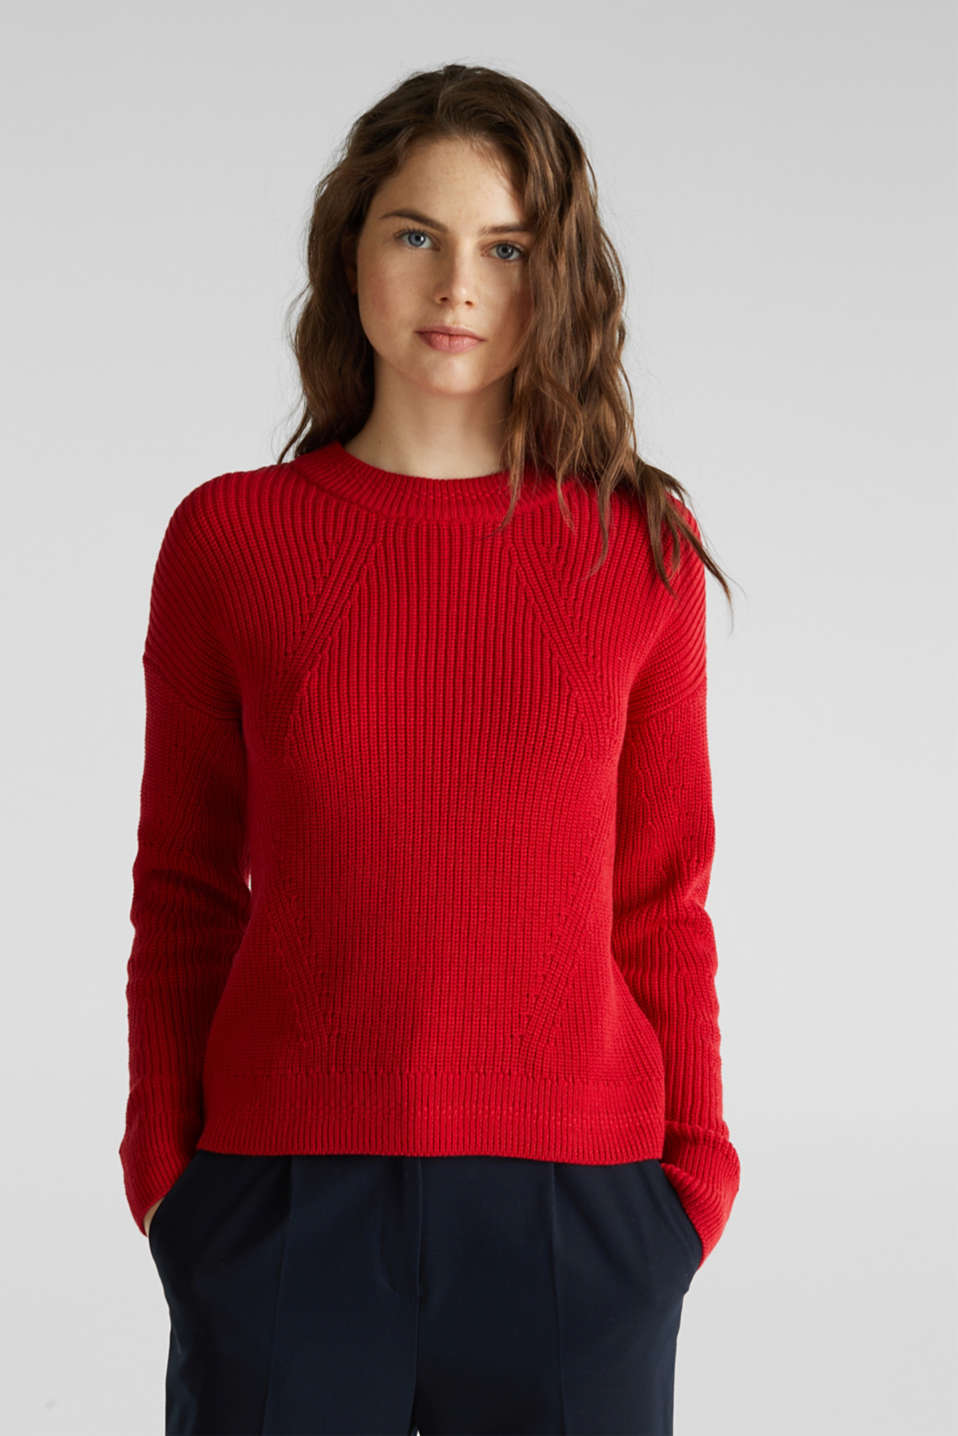 Esprit - Jumper with textured details, 100% cotton